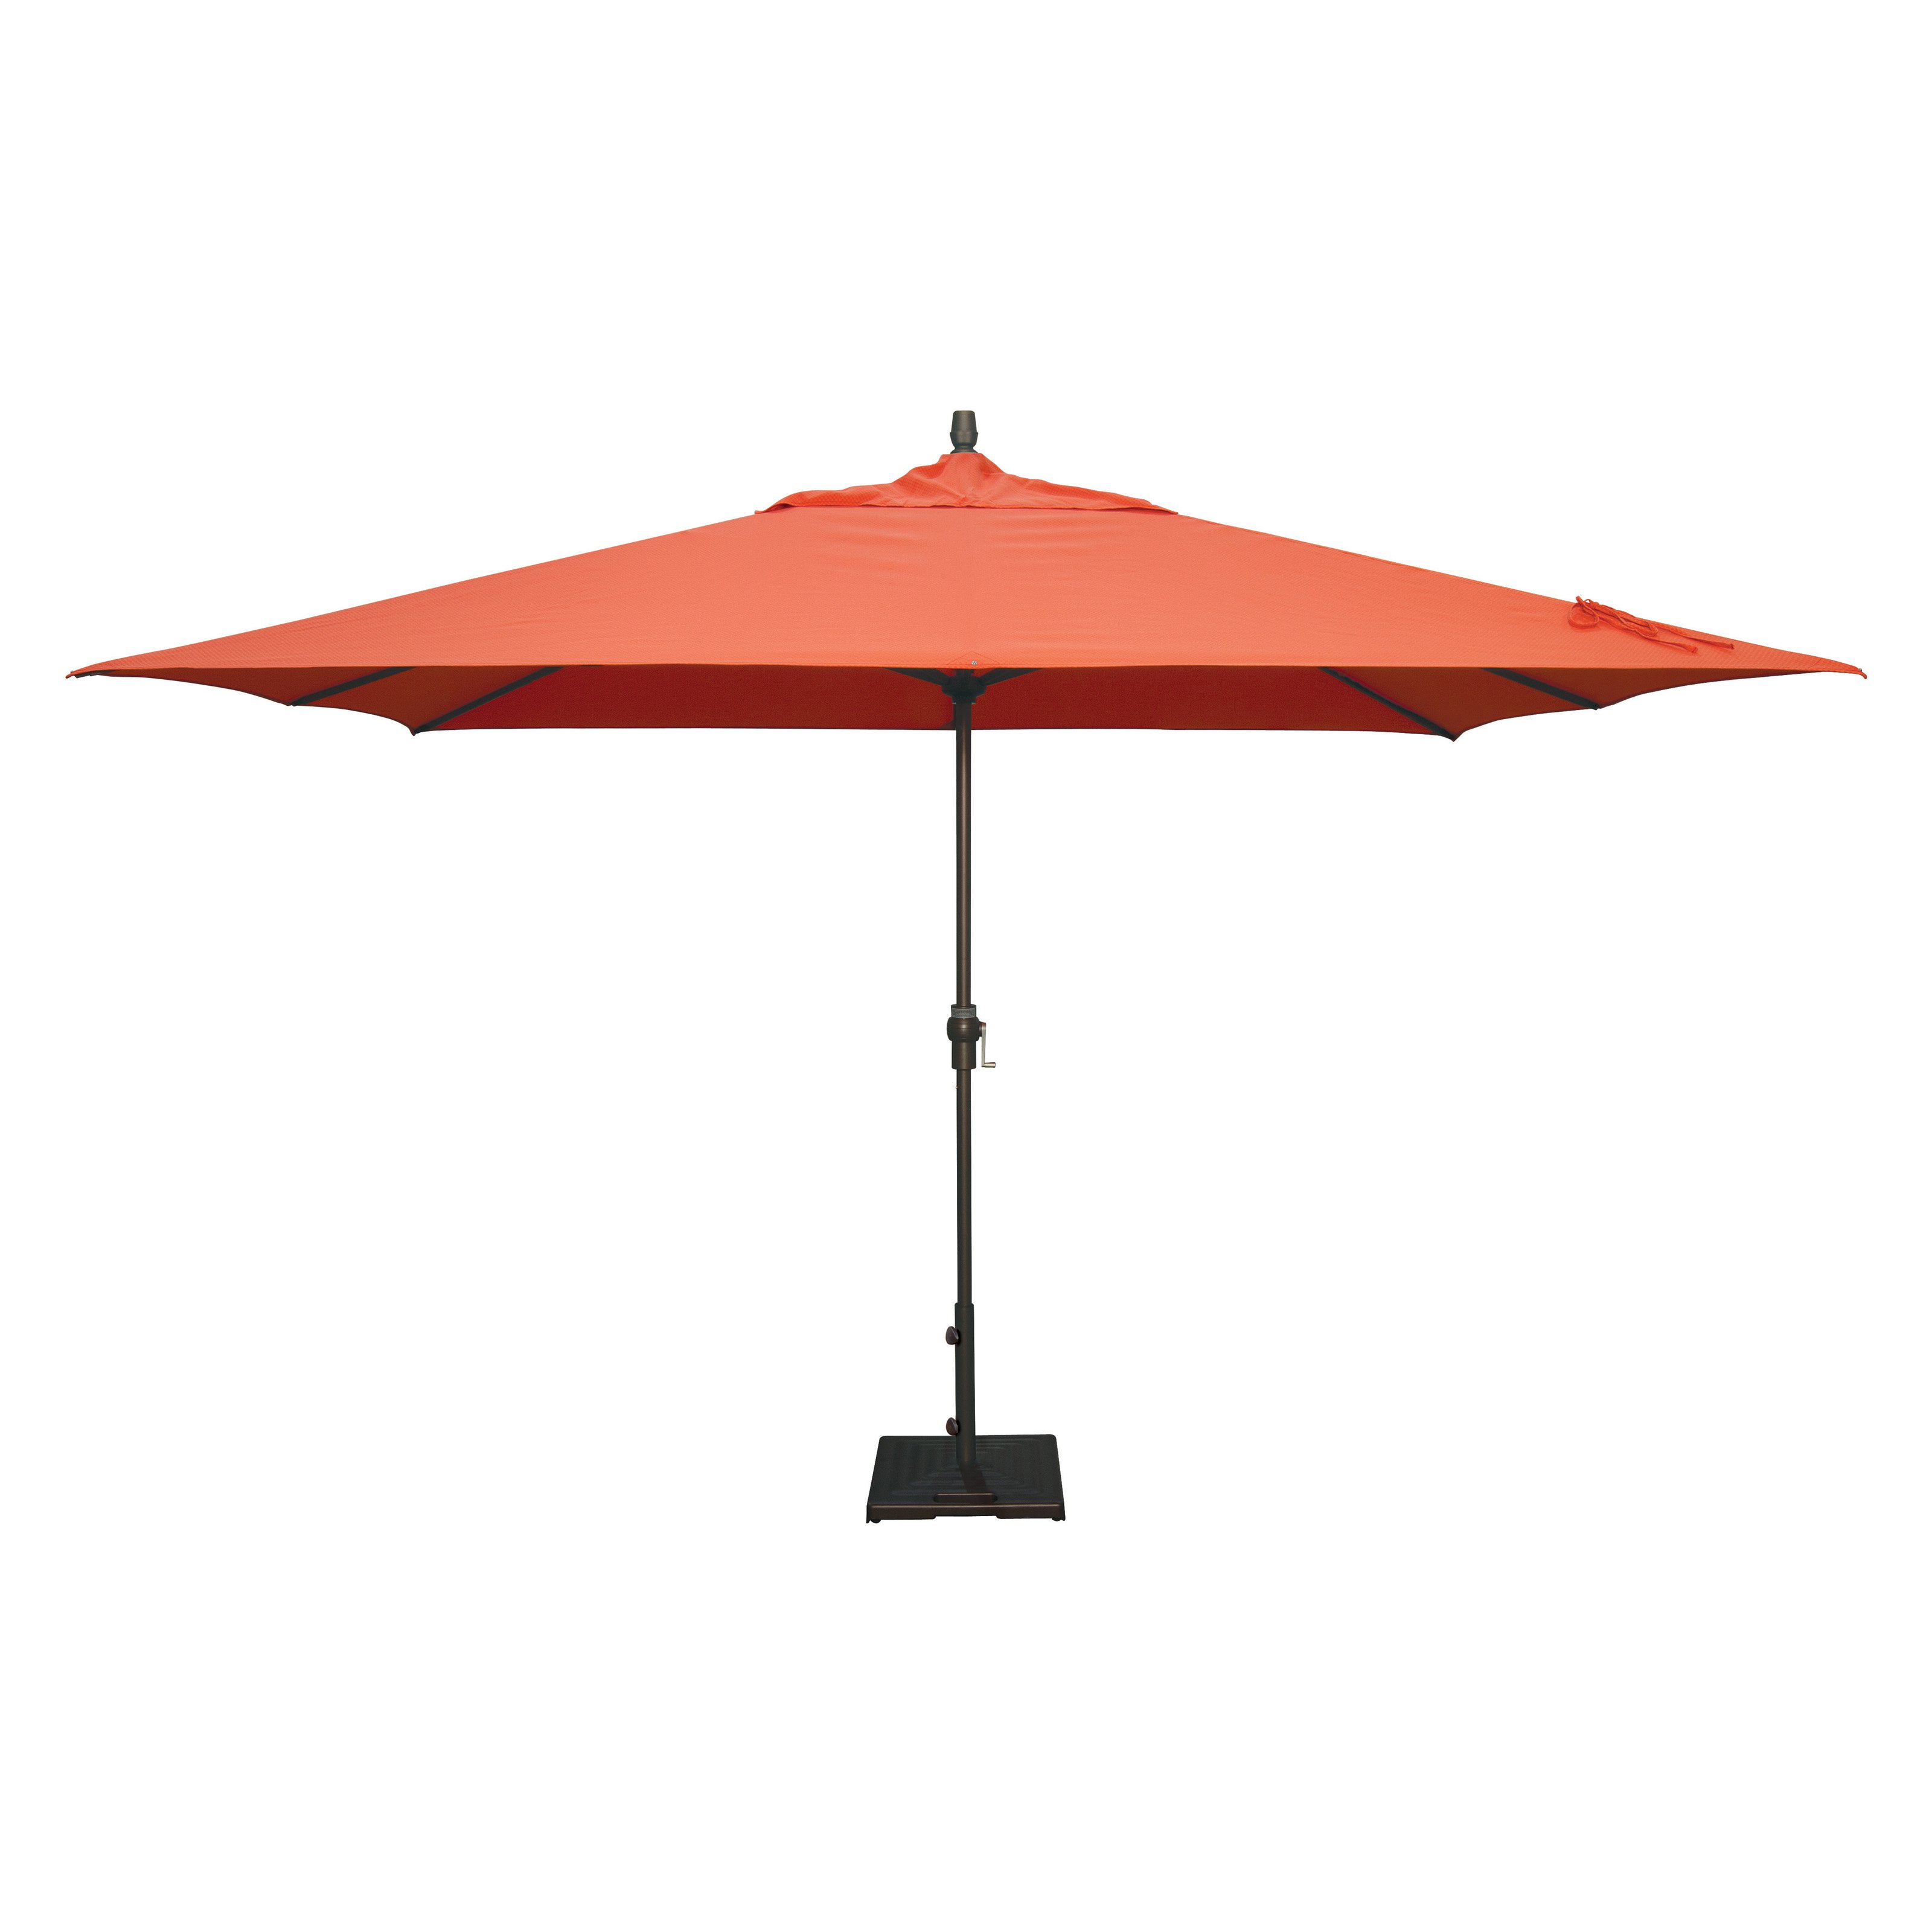 Treasure Garden 11 X 8 Ft. Obravia Rectangle Patio Umbrella